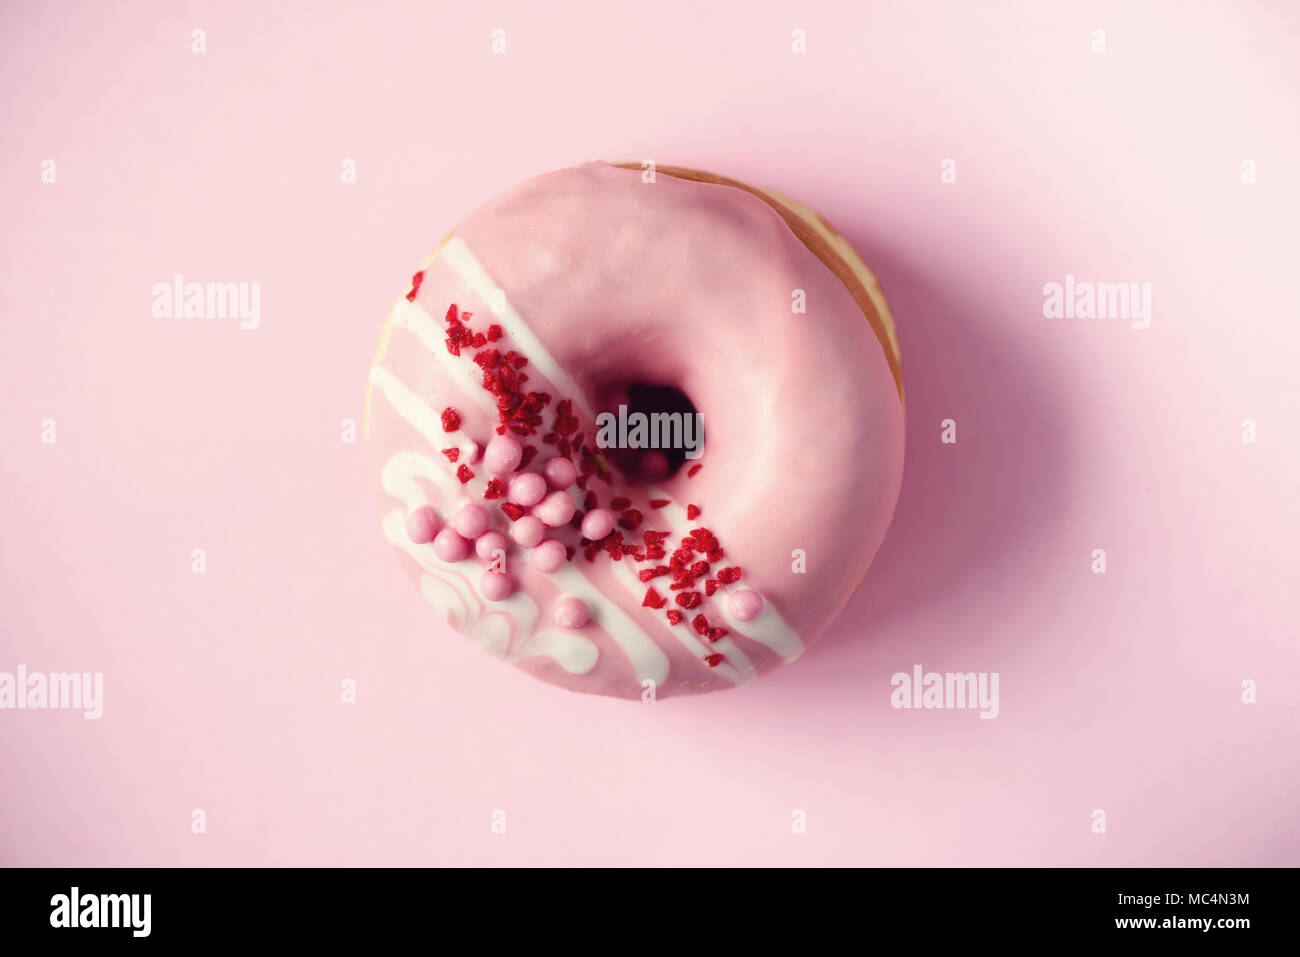 Sweet doughnut with pink icing on pastel background. Tasty donut on pink texture, copy space, top view - Stock Image